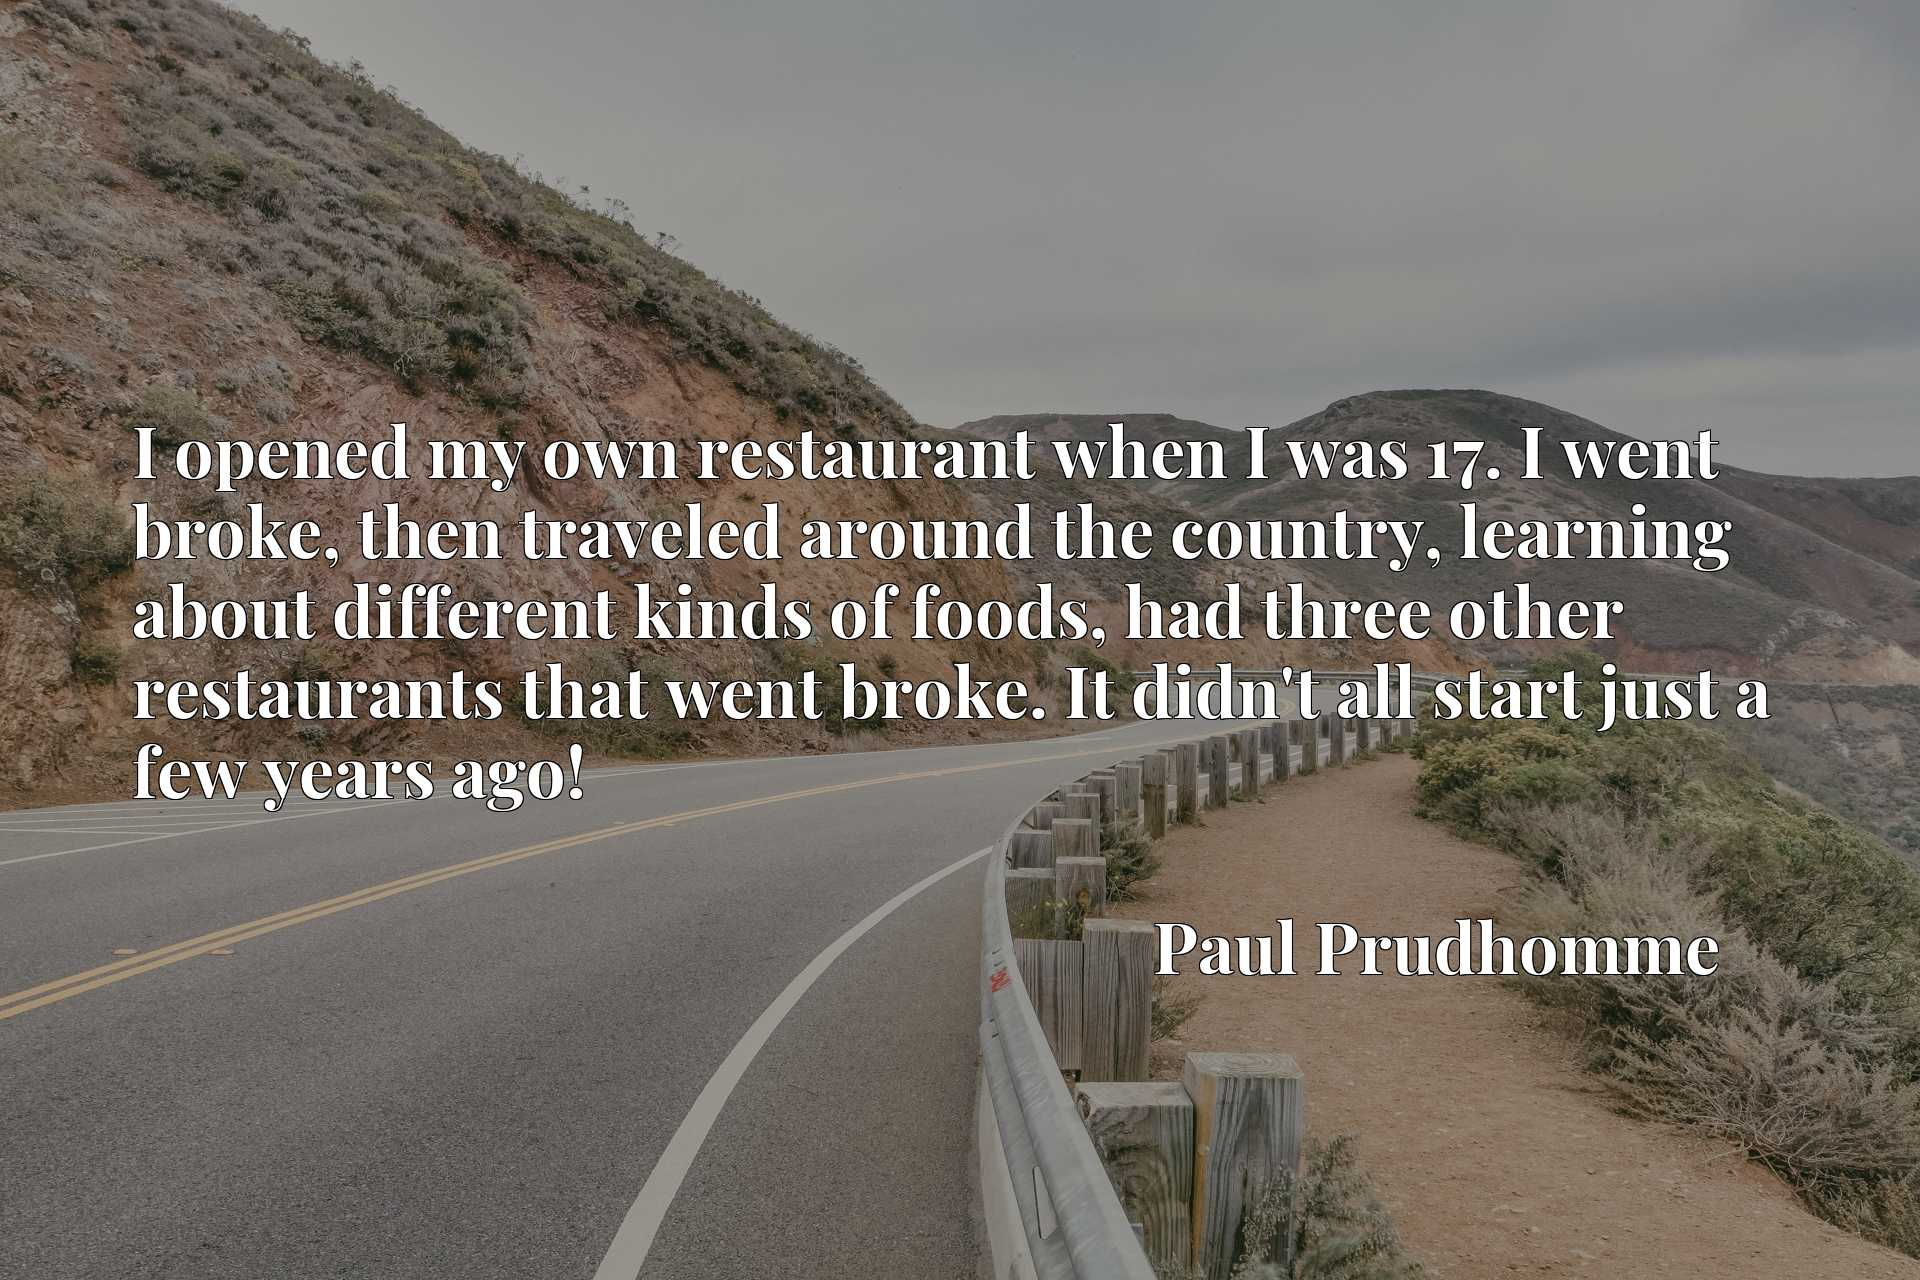 I opened my own restaurant when I was 17. I went broke, then traveled around the country, learning about different kinds of foods, had three other restaurants that went broke. It didn't all start just a few years ago!